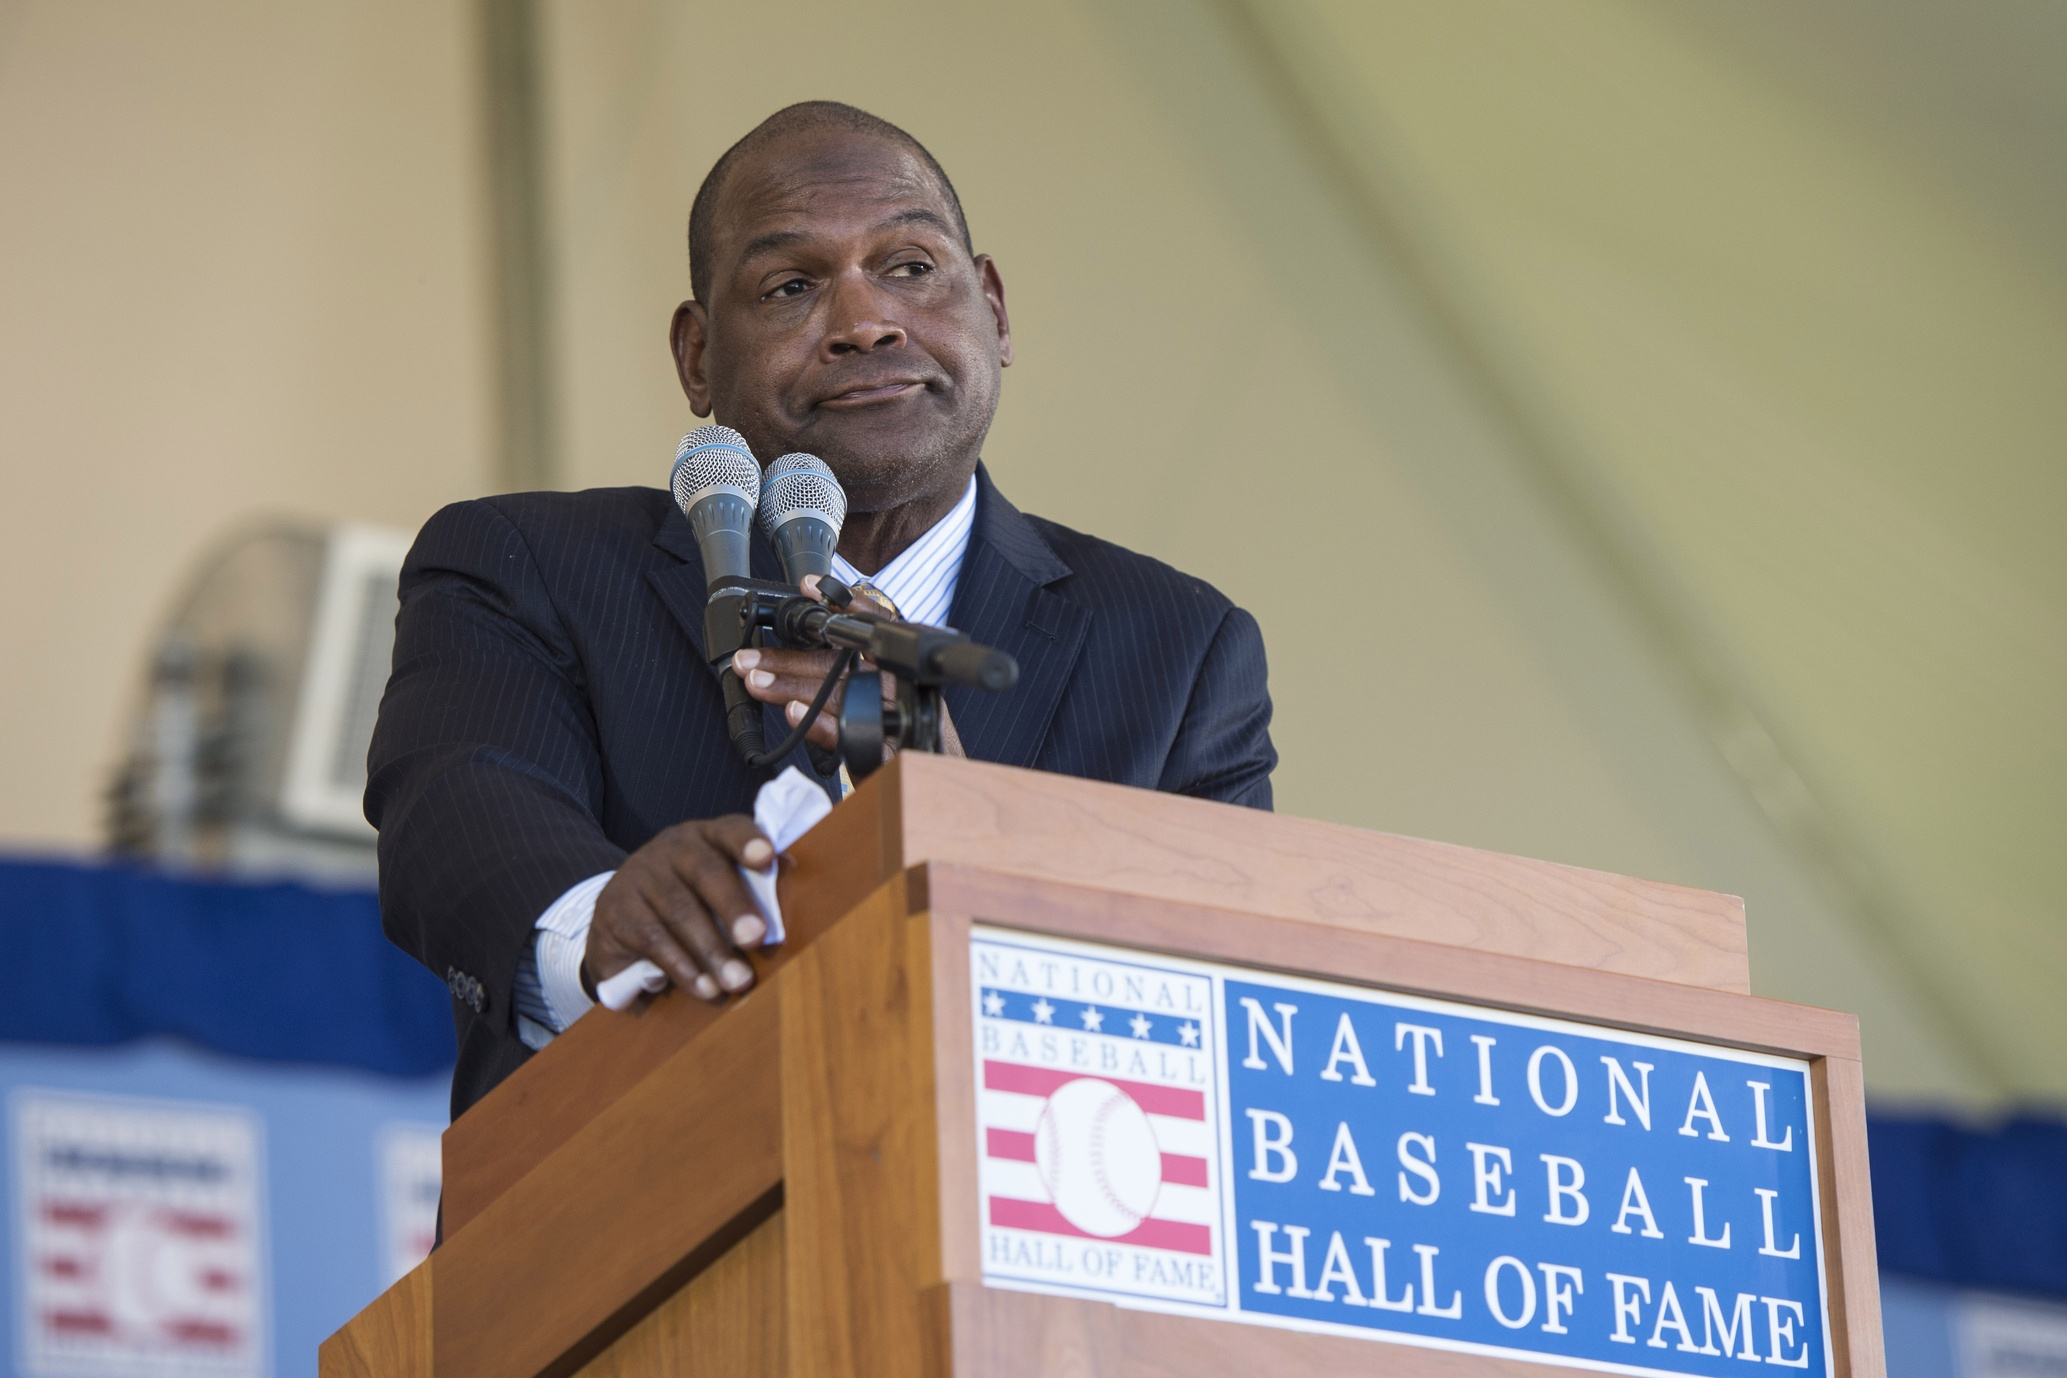 Jul 30, 2017; Cooperstown, NY, USA; Hall of Fame Inductee Tim Raines making his acceptance speech at Clark Sports Center. Mandatory Credit: Gregory J. Fisher-USA TODAY Sports